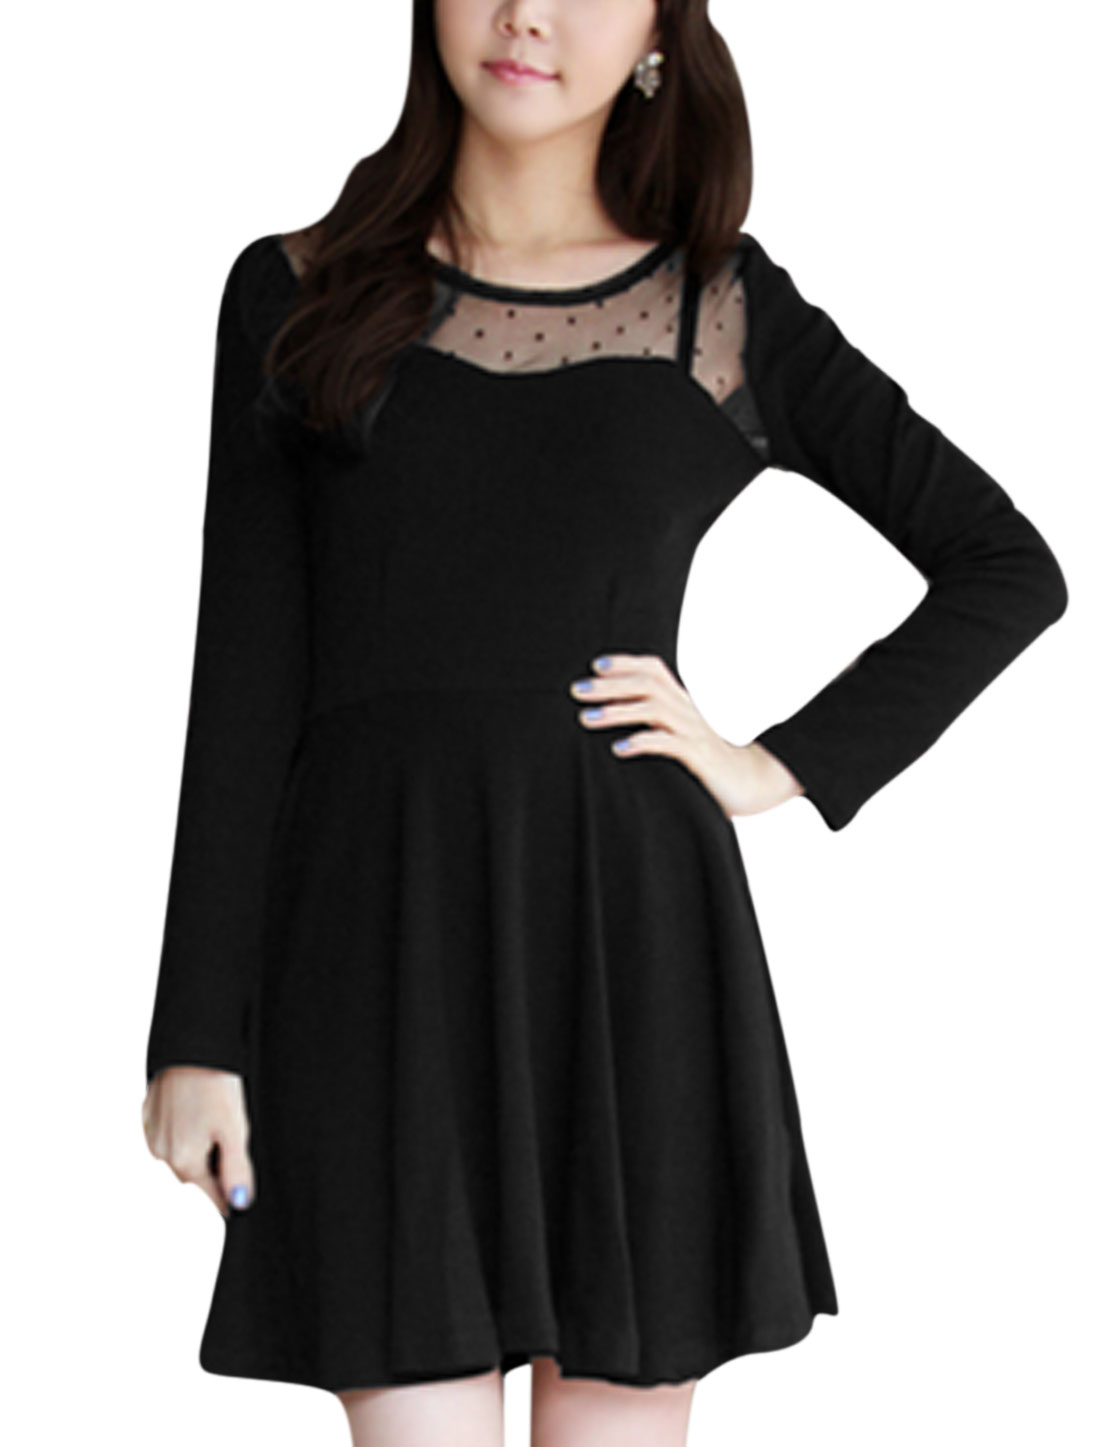 Women Long Sleeve Mesh Panel Dots Design Detail Short Dress Black S